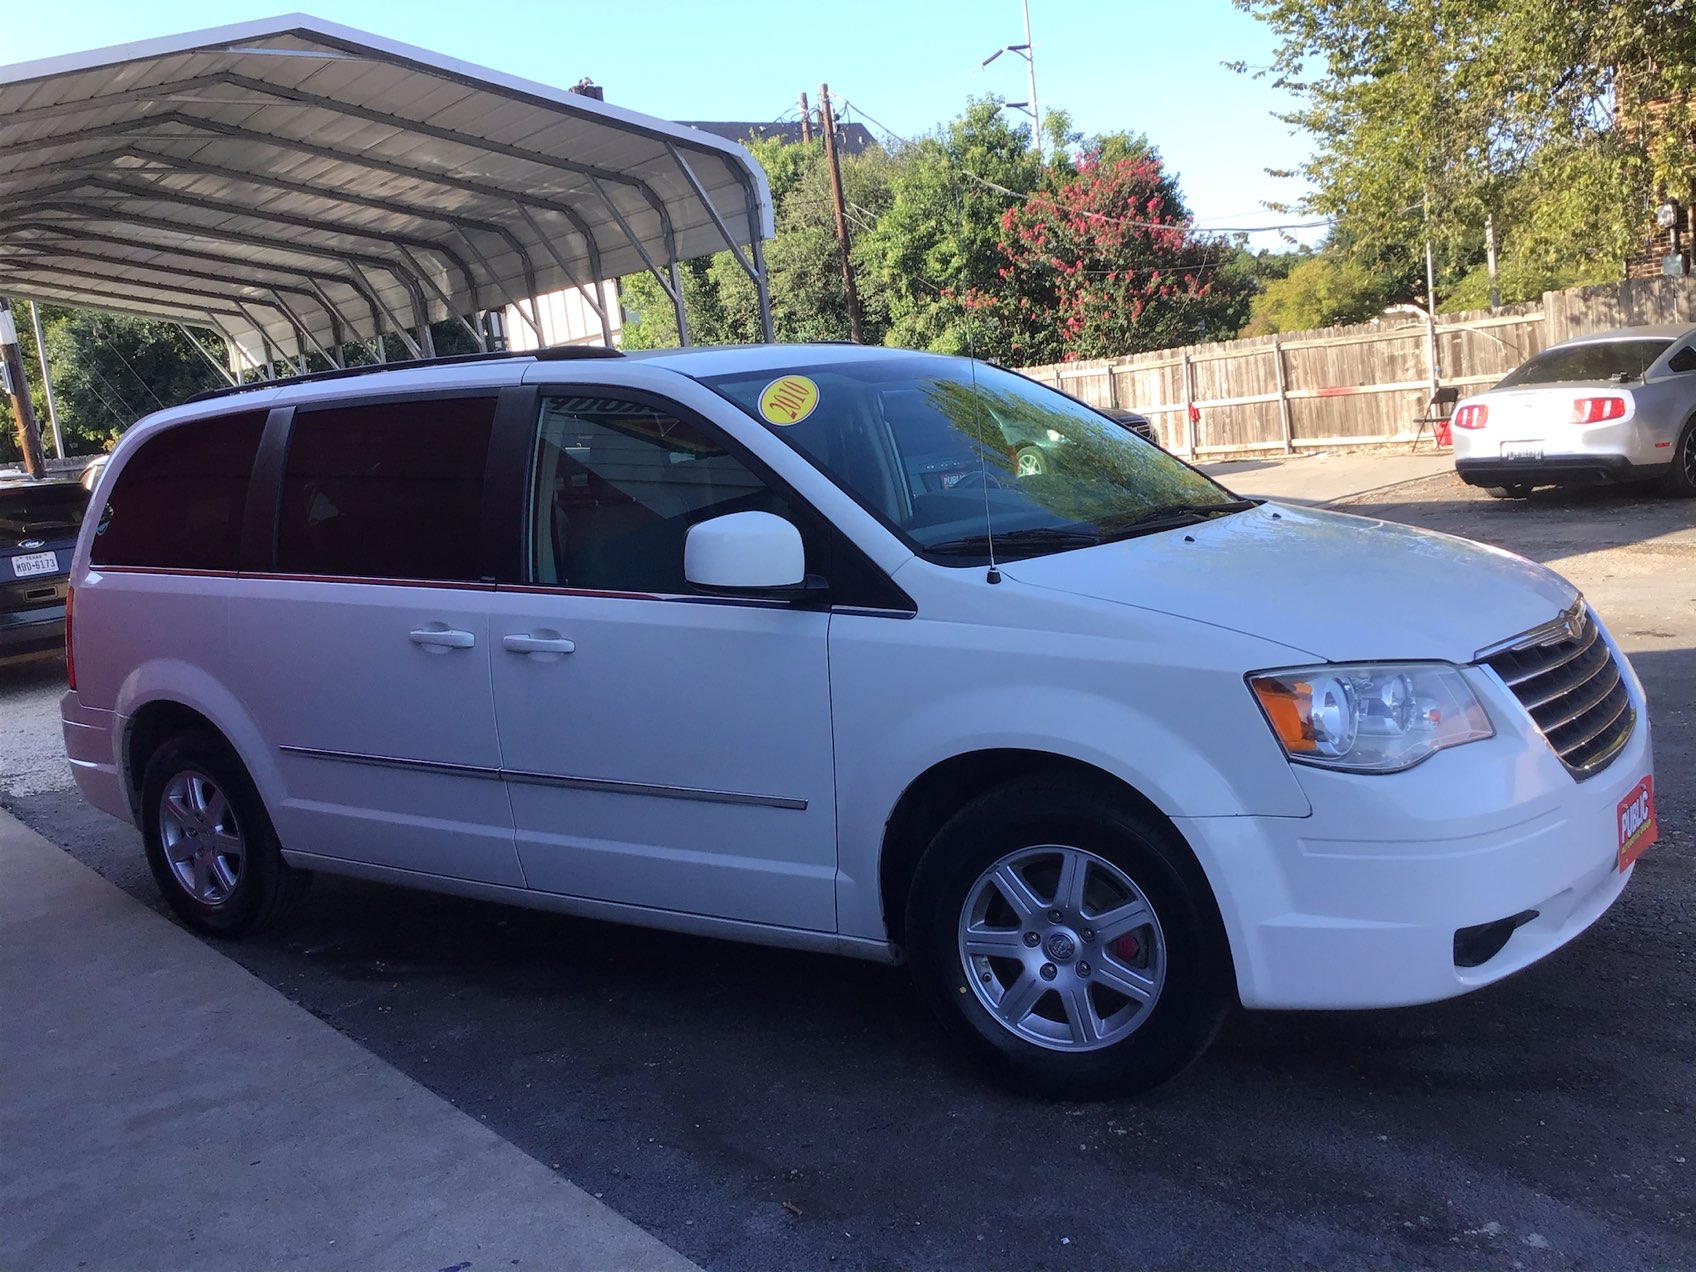 used vehicle - Van-Minivan CHRYSLER TOWN AND COUNTRY 2010